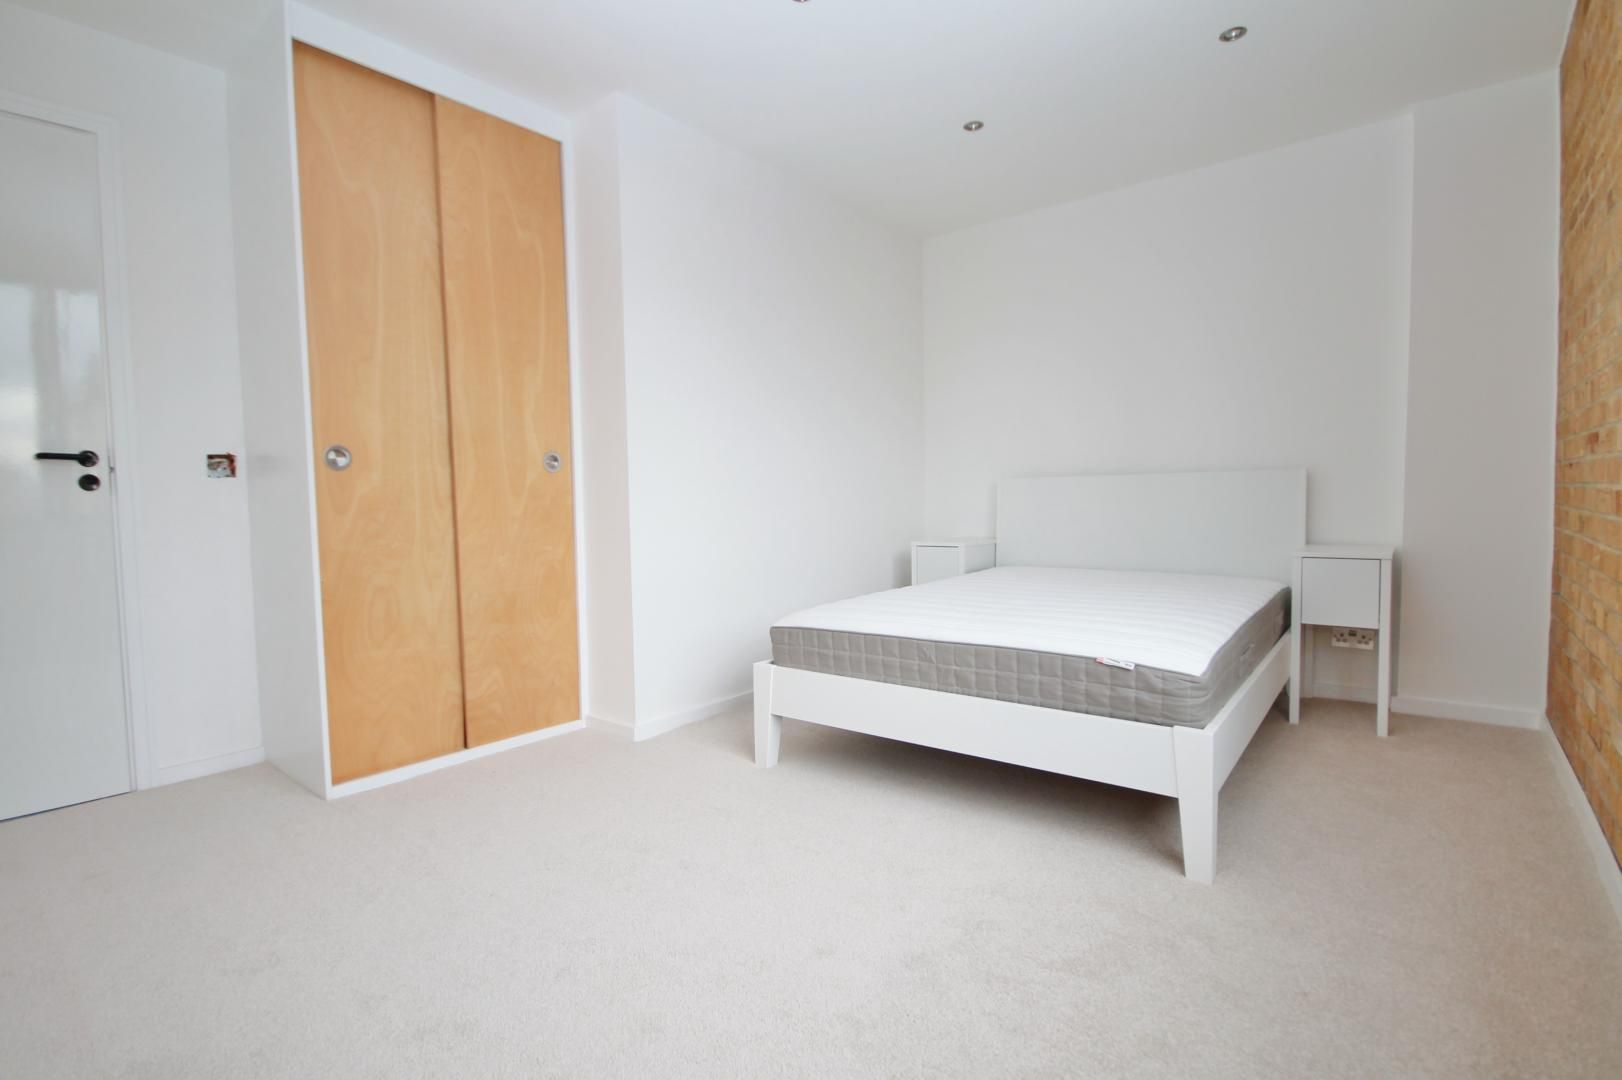 2 bed flat for sale in Burrells Wharf Square, E14